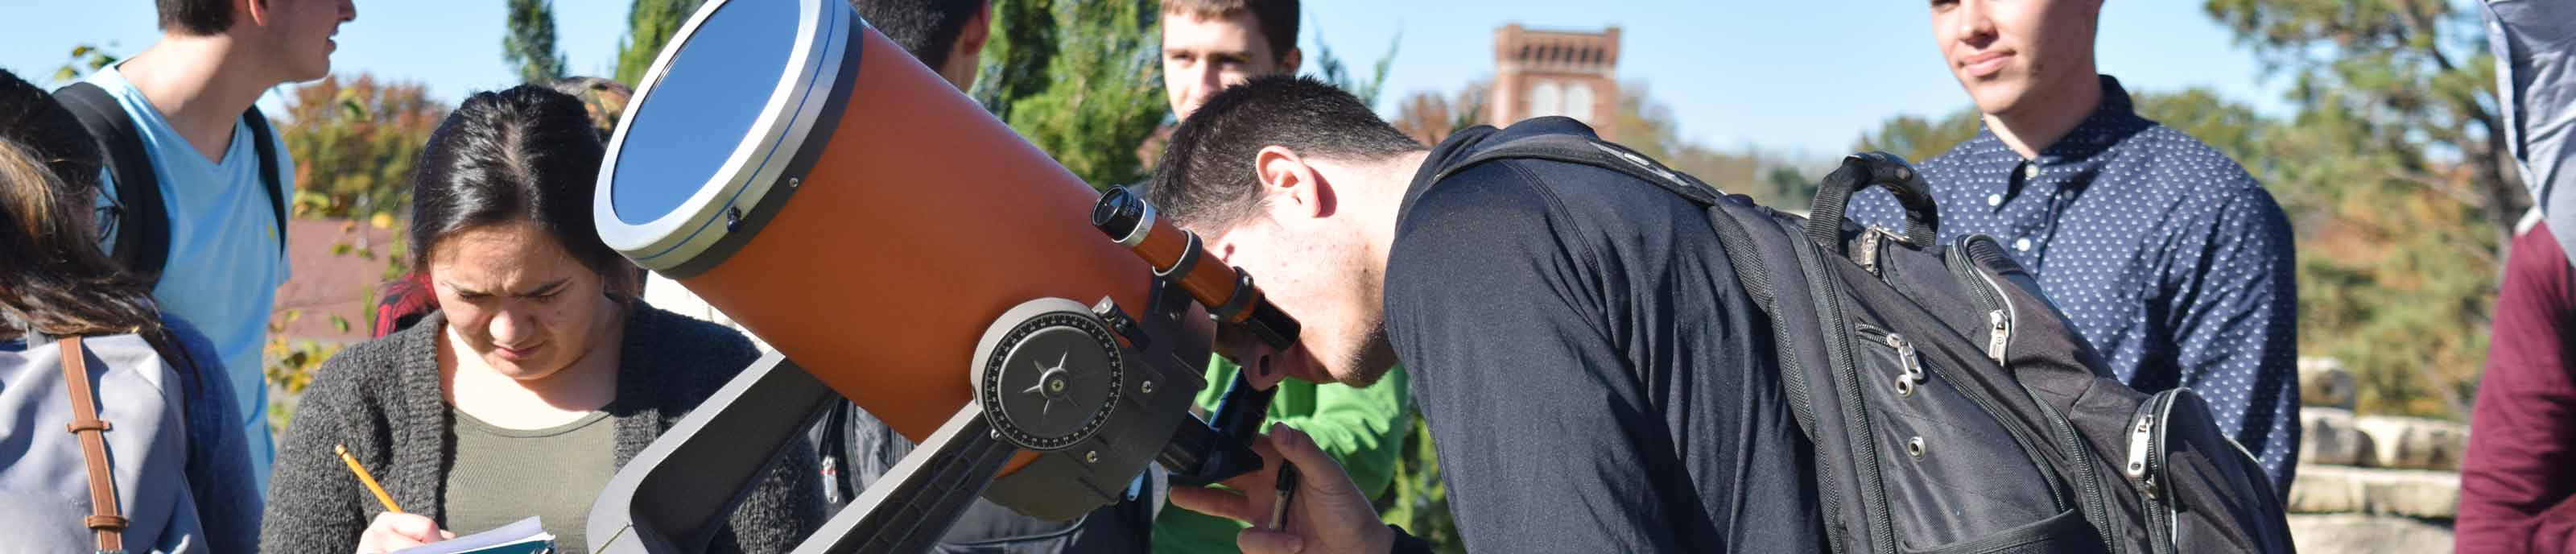 Students working with a telescope in Astronomy class